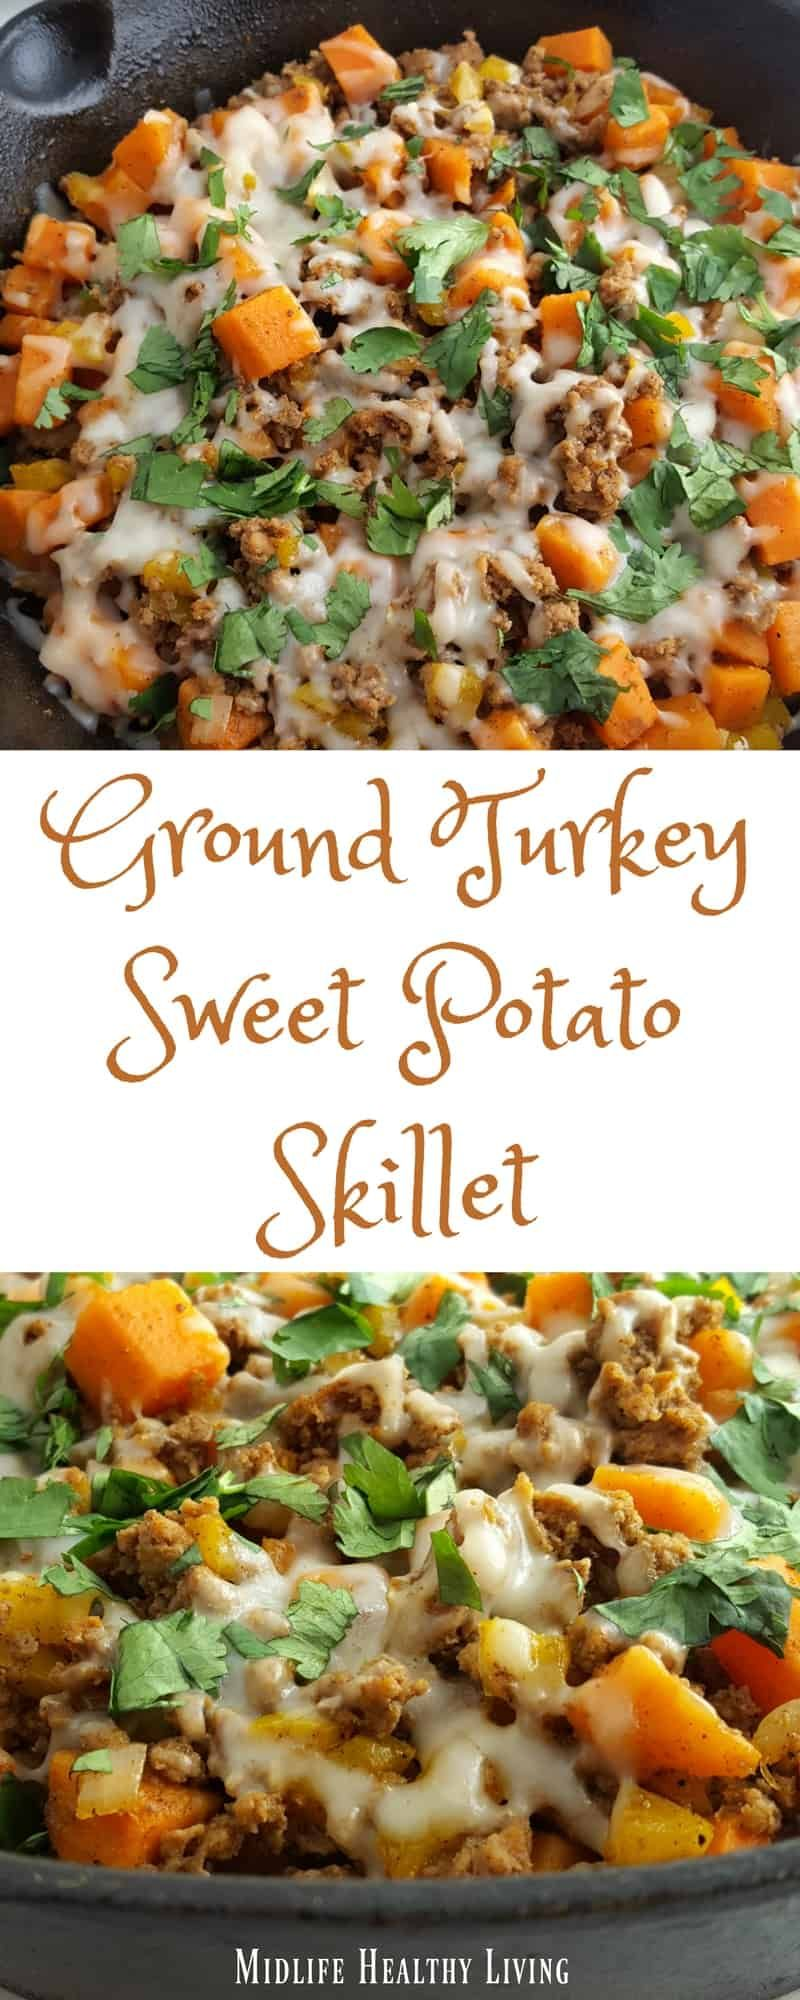 Photo of This ground turkey sweet potato skillet recipe is simple, easy, delicious, and W…